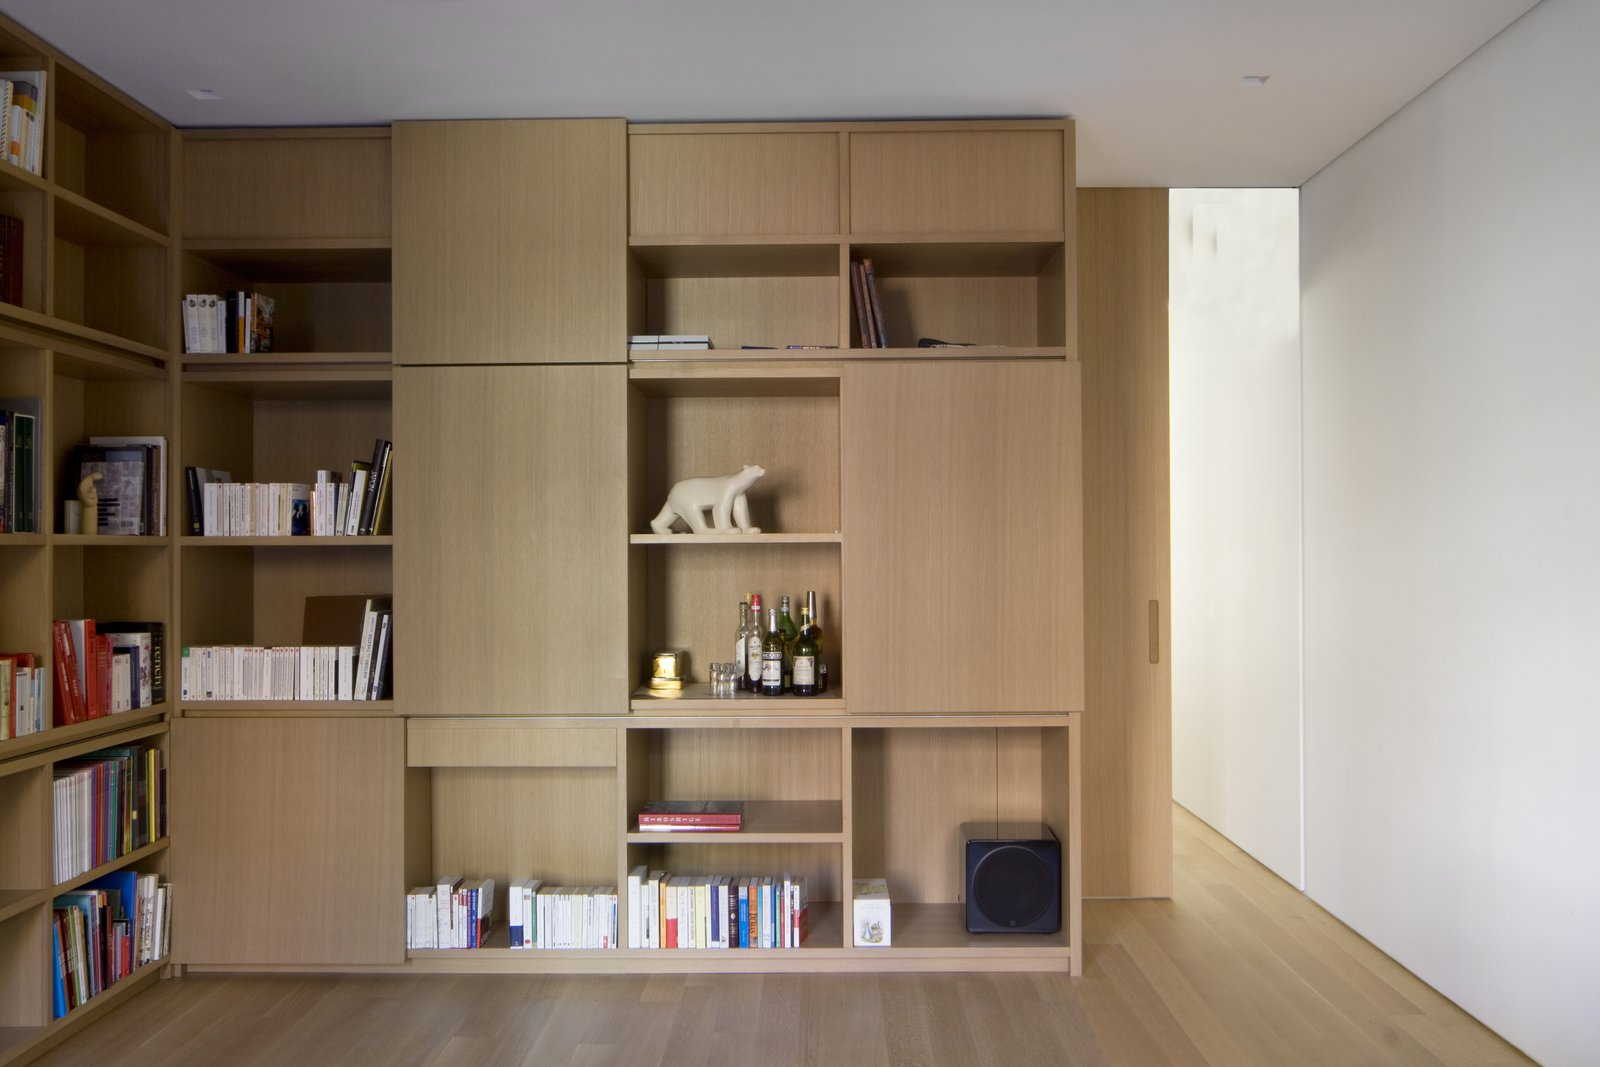 More custom millwork features asymmetrical shelving and closed storage spaces with sliding panels on HAFELE sliding tracks. A 10-inch matching pocket door provides privacy when desired without interrupting the space.